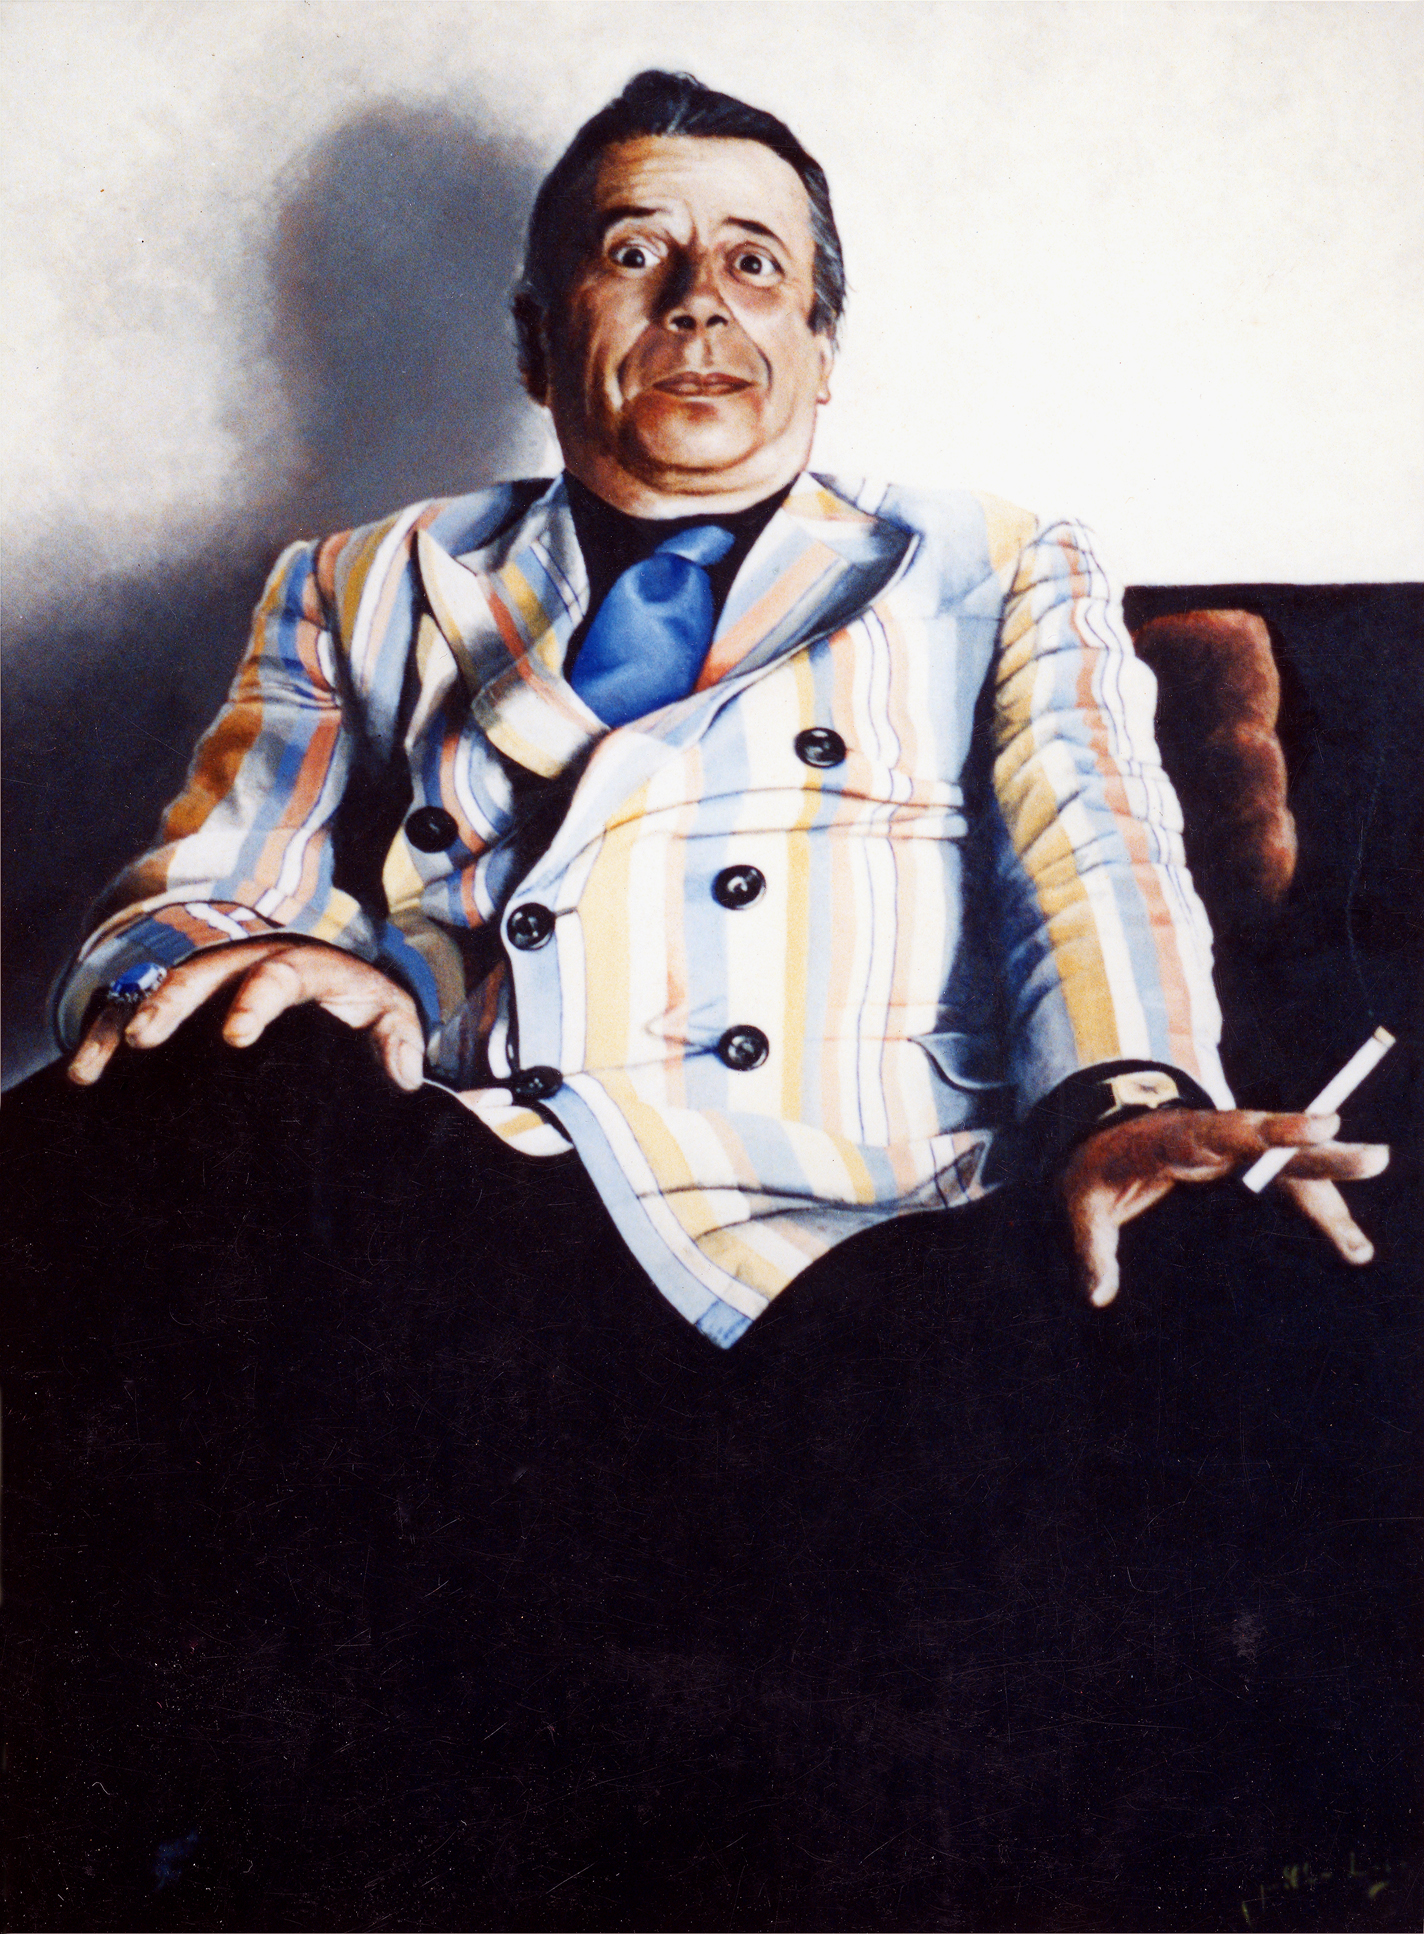 My portrait of George Melly, 1985.